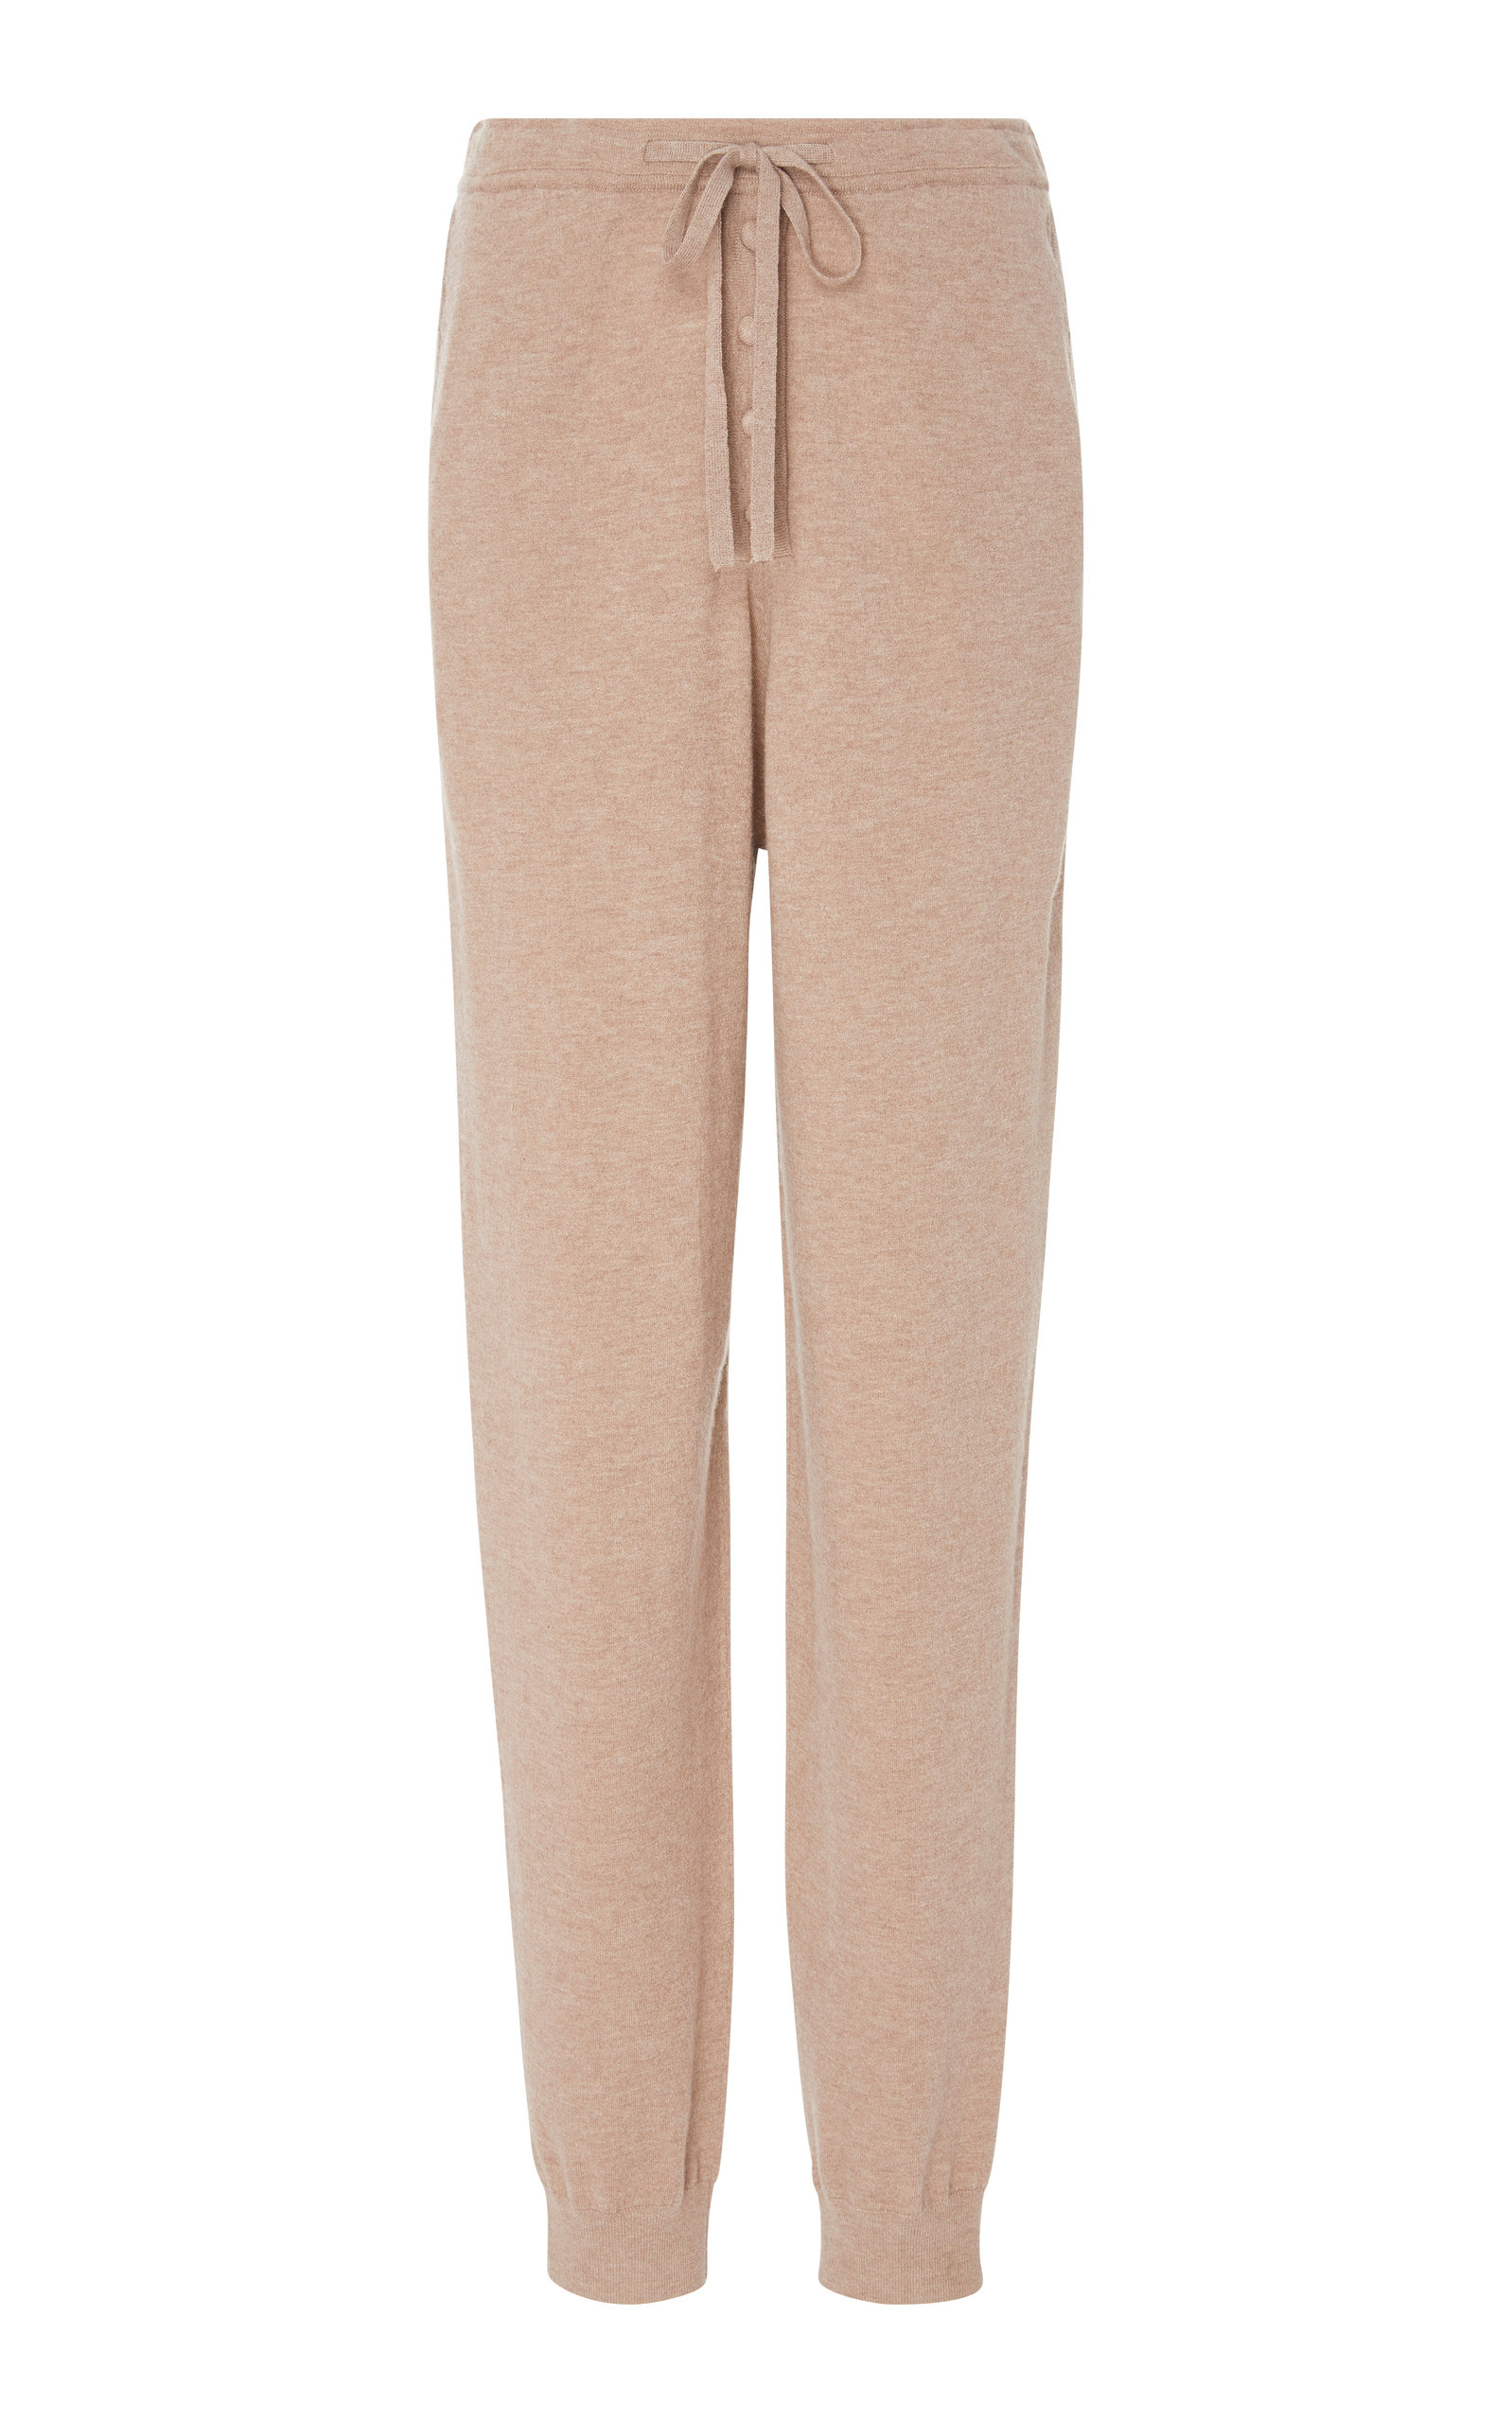 LIVE THE PROCESS KNIT LONG JOHN PANT